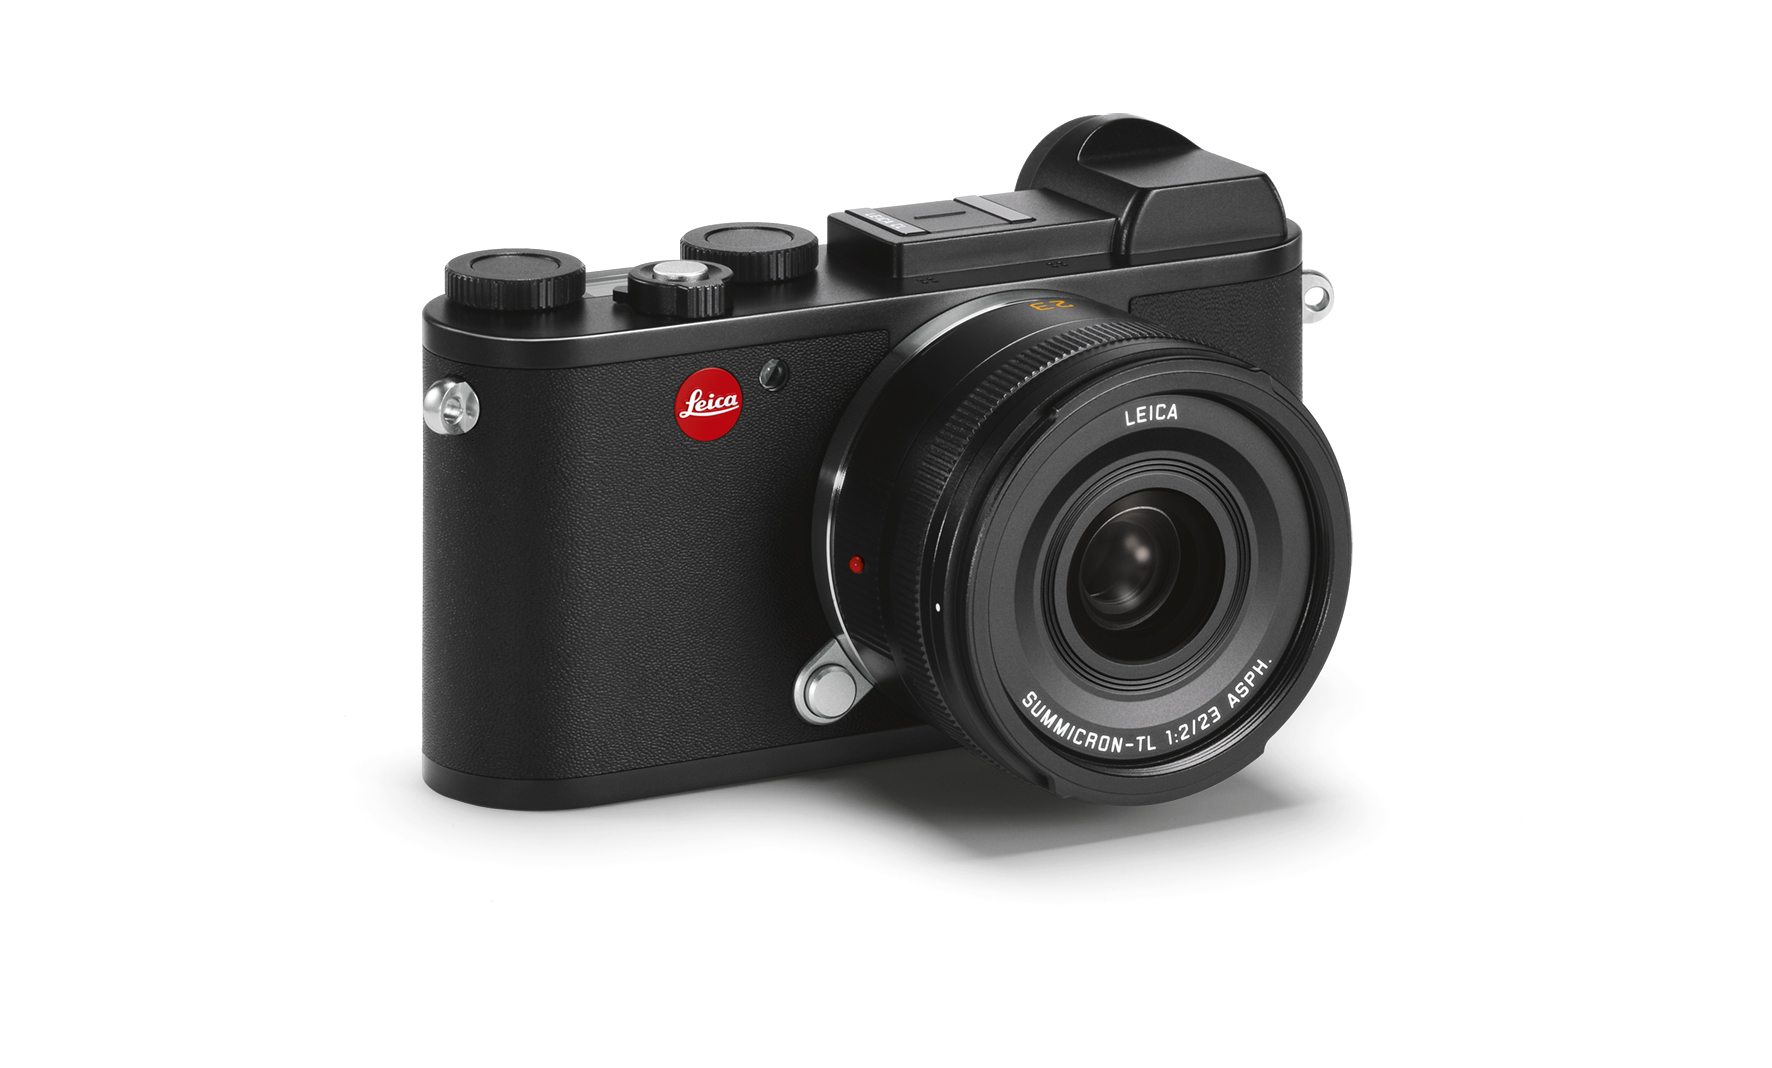 Leica Launches CL 'Street Kit' with 23mm Lens, Grip, Strap and Extra